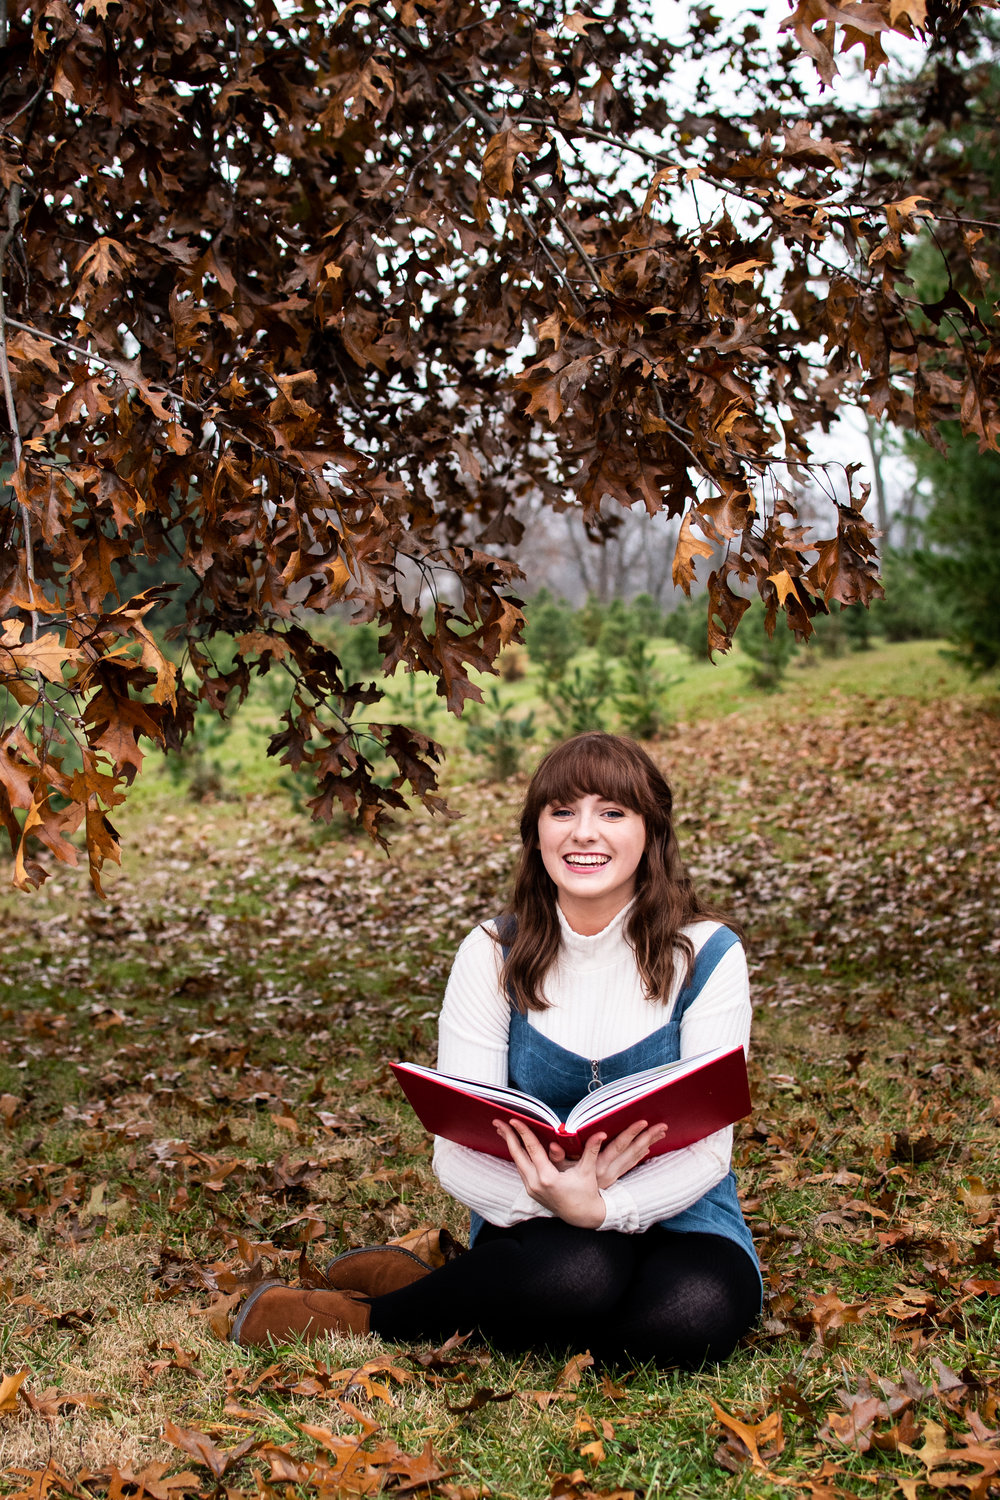 Kyla Jo Photography // Senior Session // Muncie Indiana // Whitetail Tree Farm // Whimsical Senior Photos // Harry Potter // Outdoor Senior Photos // Christmas Tree Farm